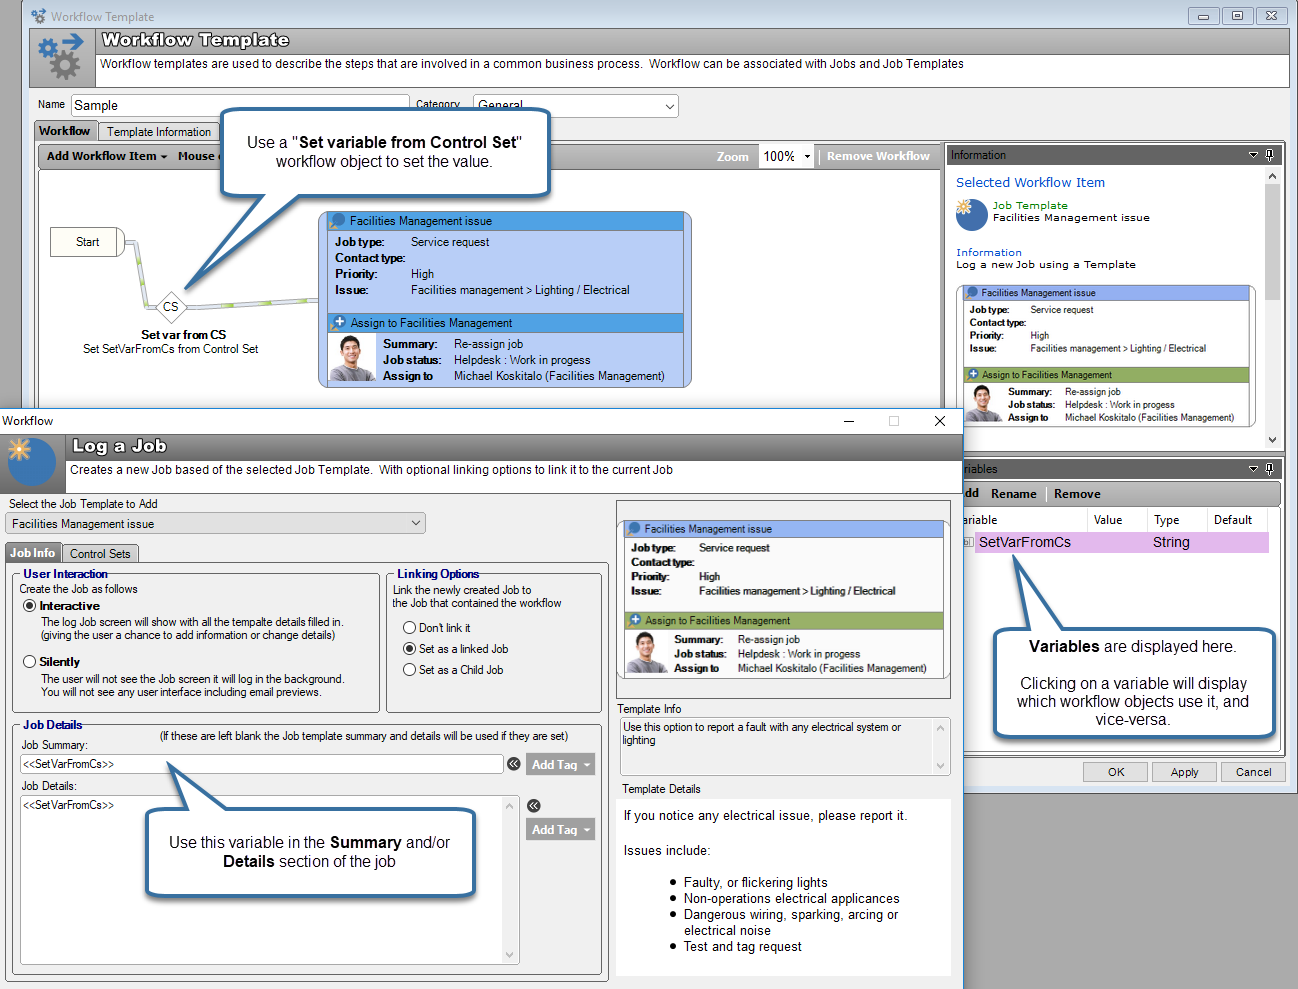 ITSM workflow multi-stage incident creation